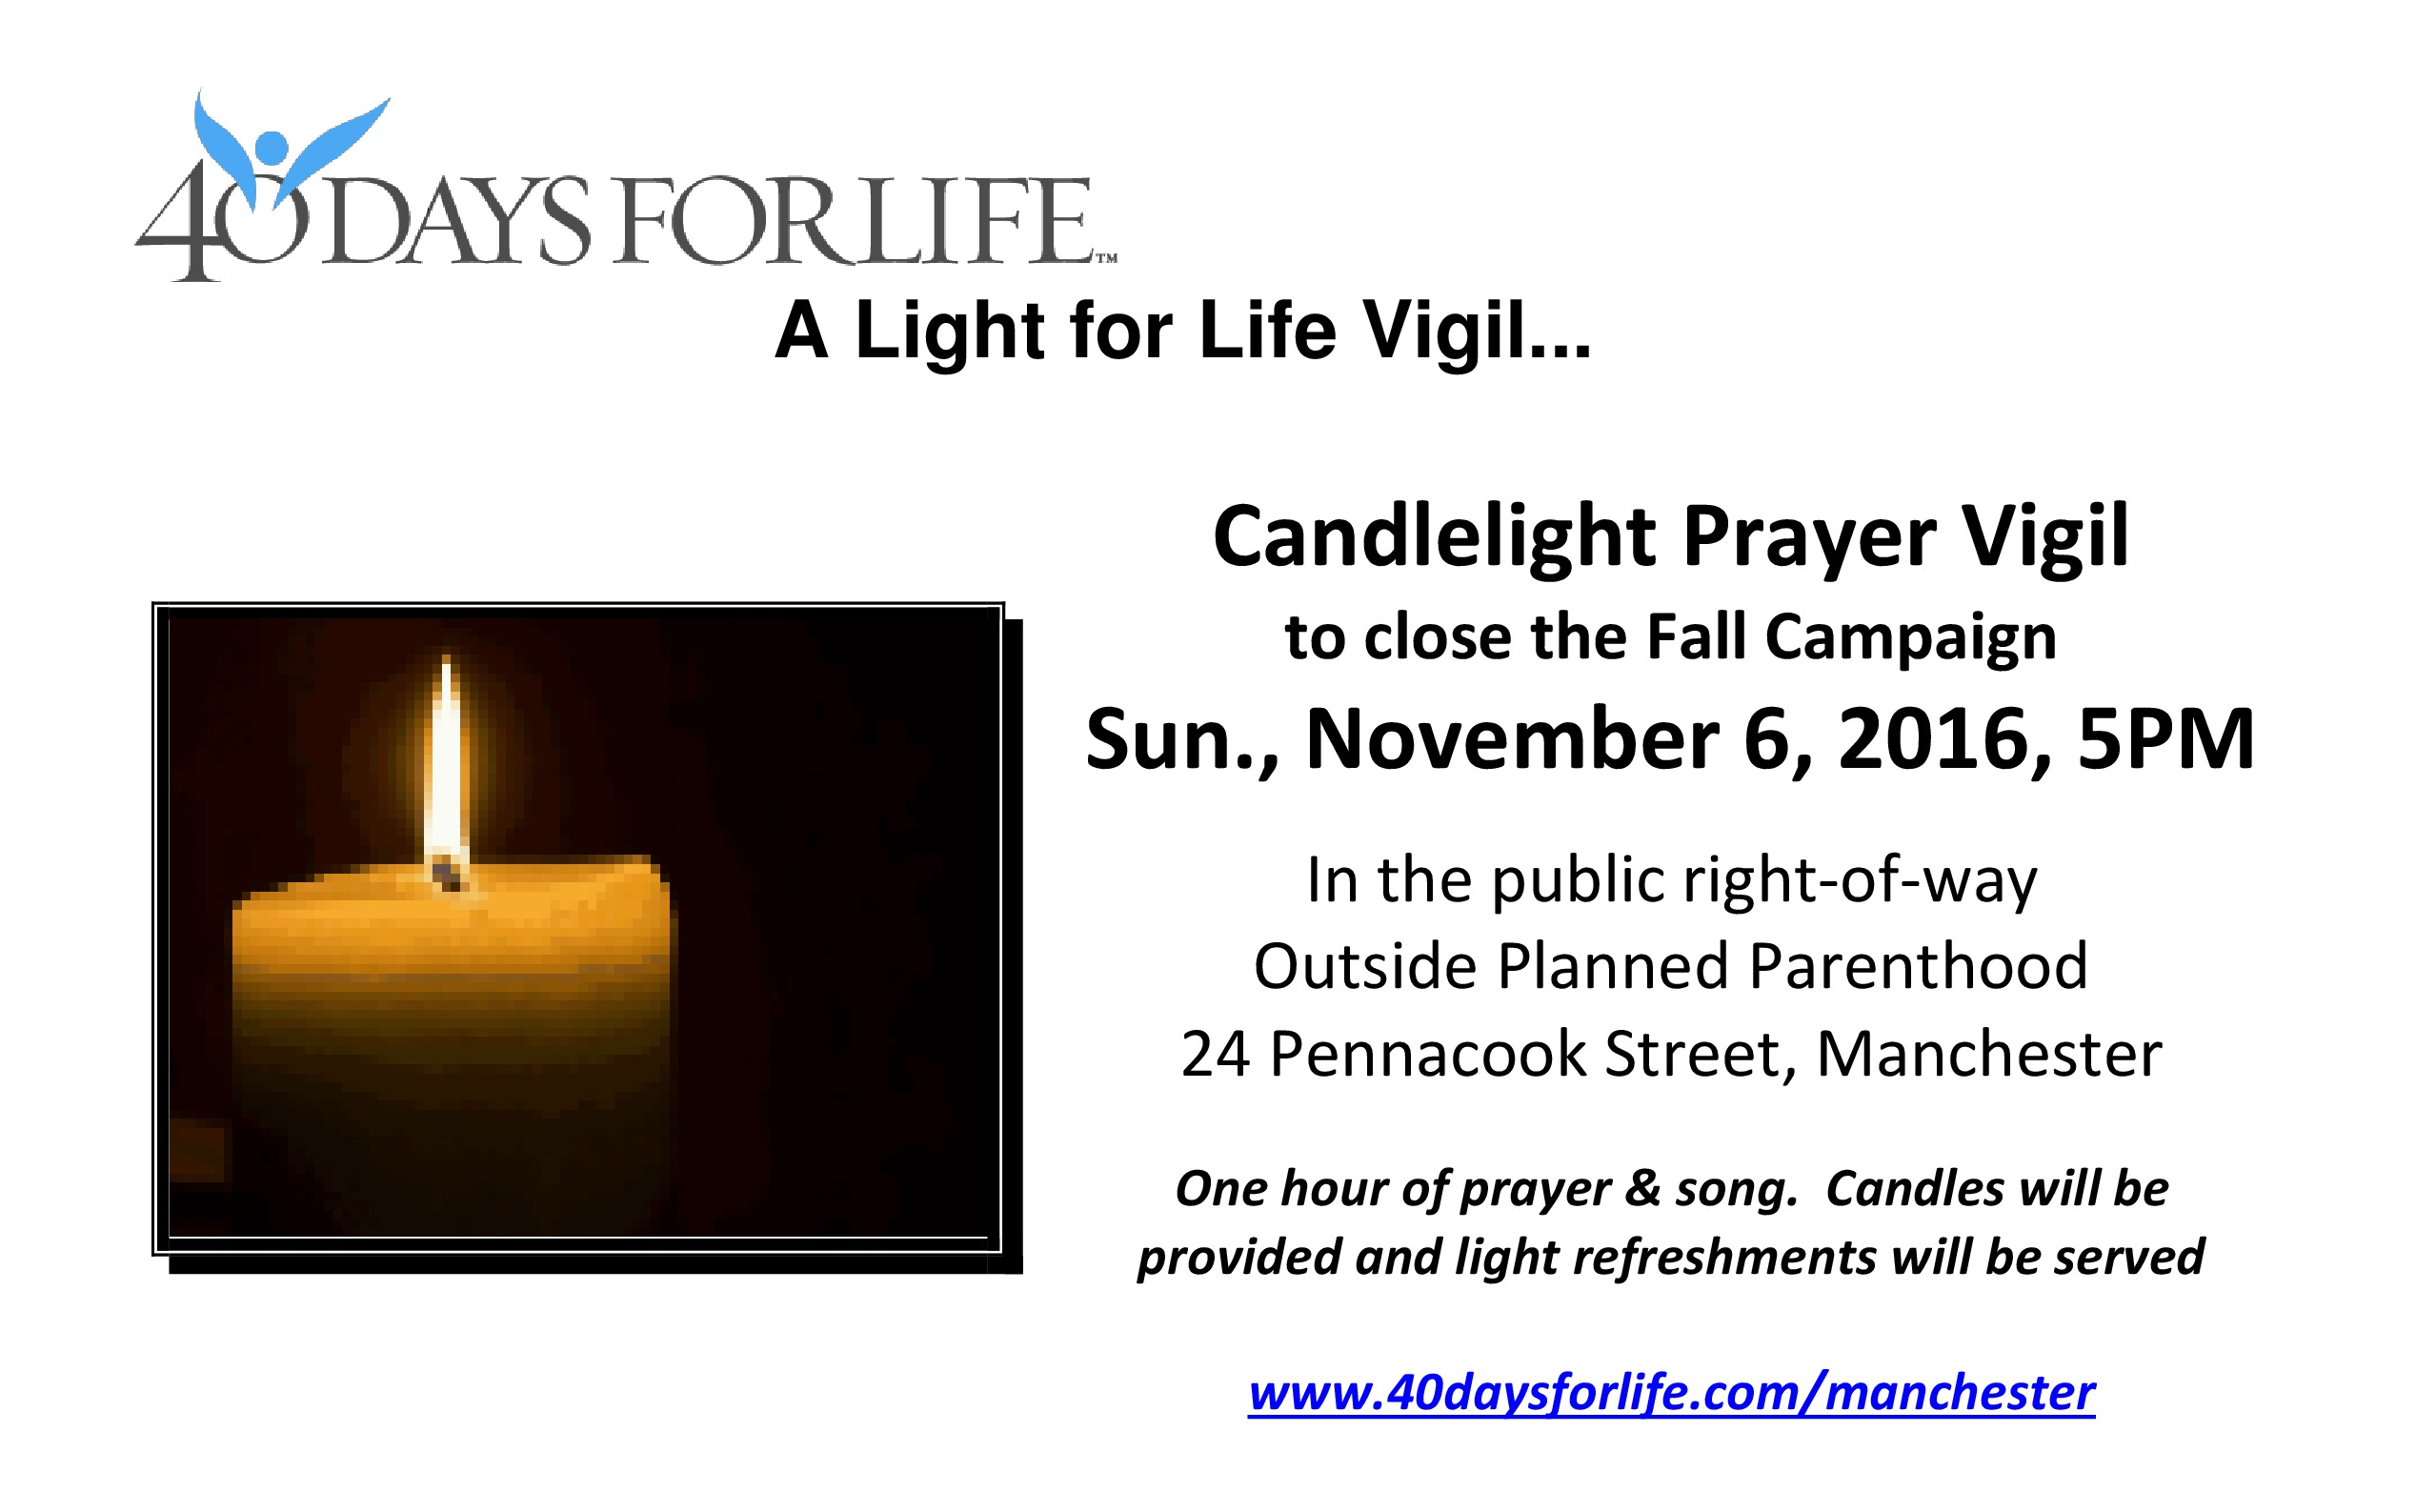 40 Days for Life Manchester Candlelight Vigil